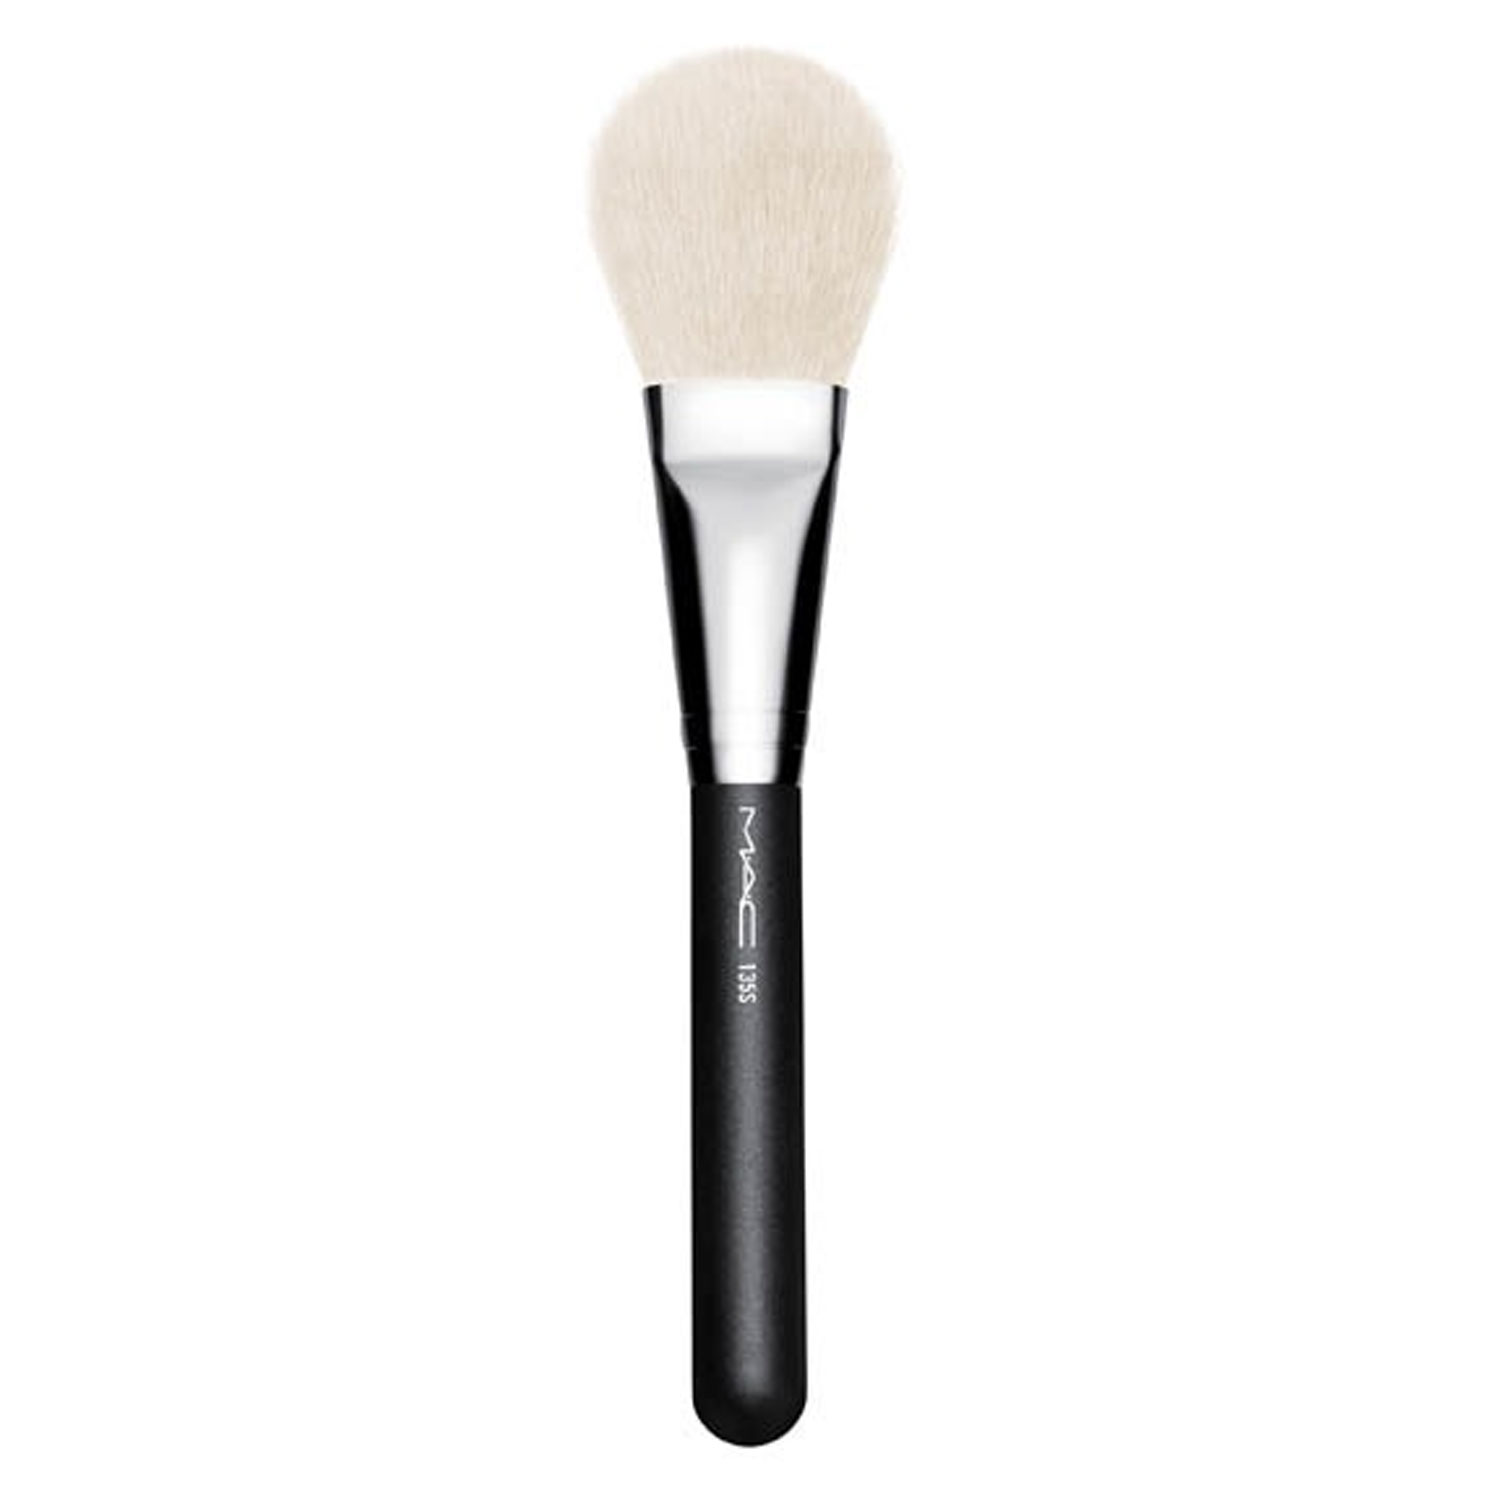 M·A·C Tools - Large Flat Powder Brush 135S